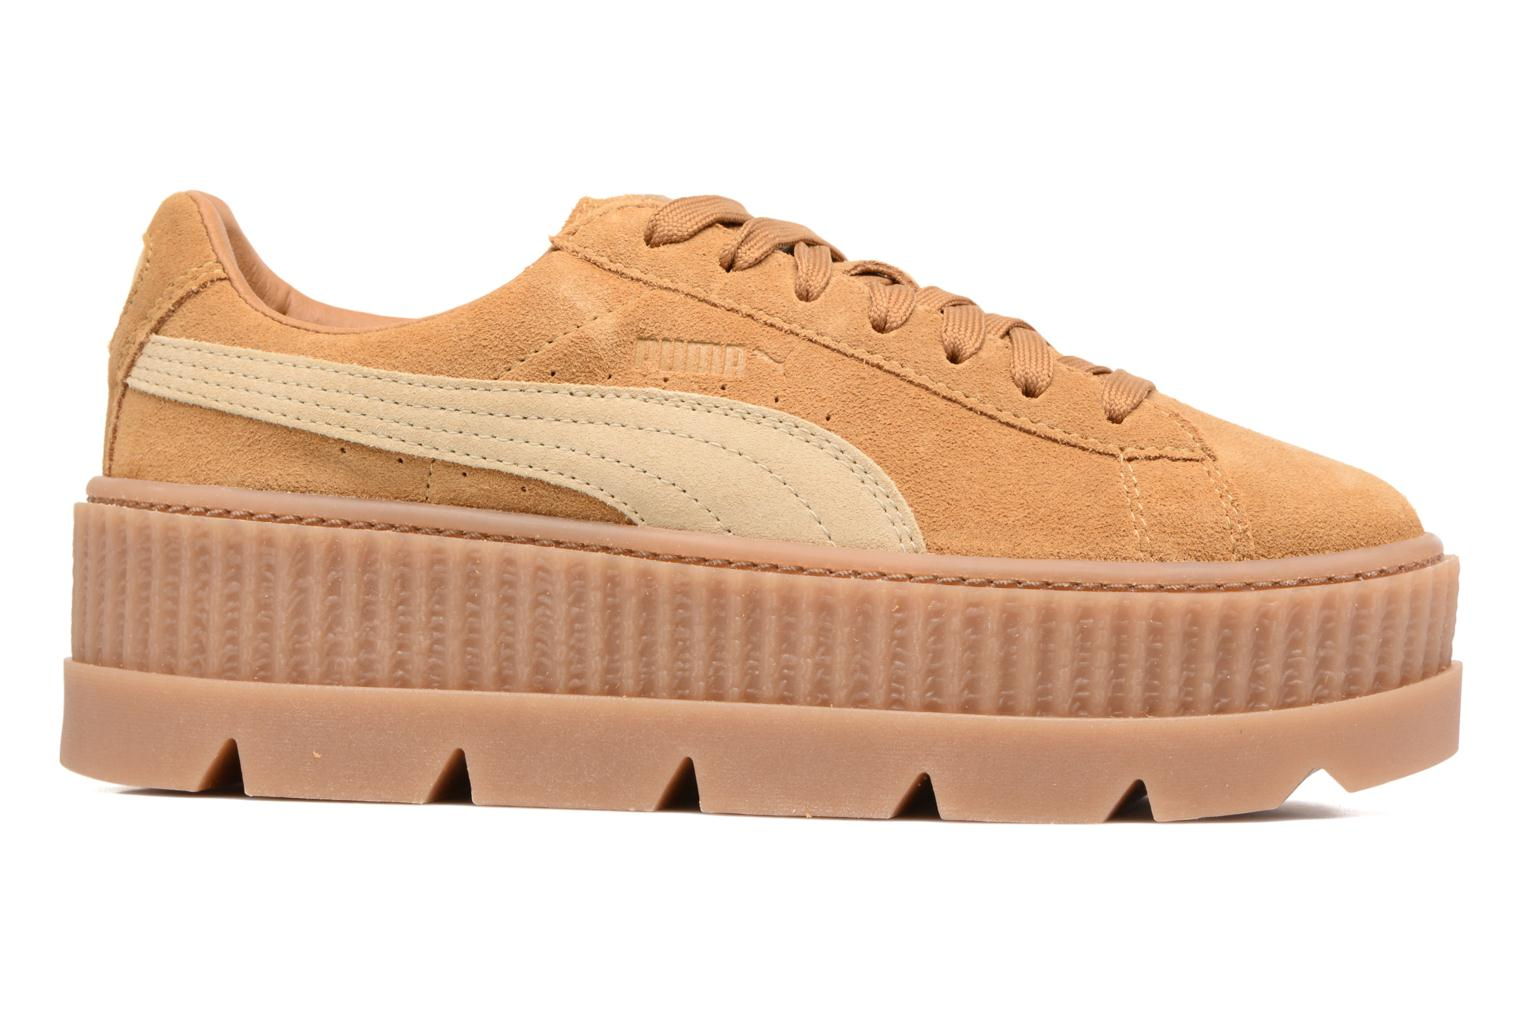 Fenty Wn Cleated Creeper Golden Brown